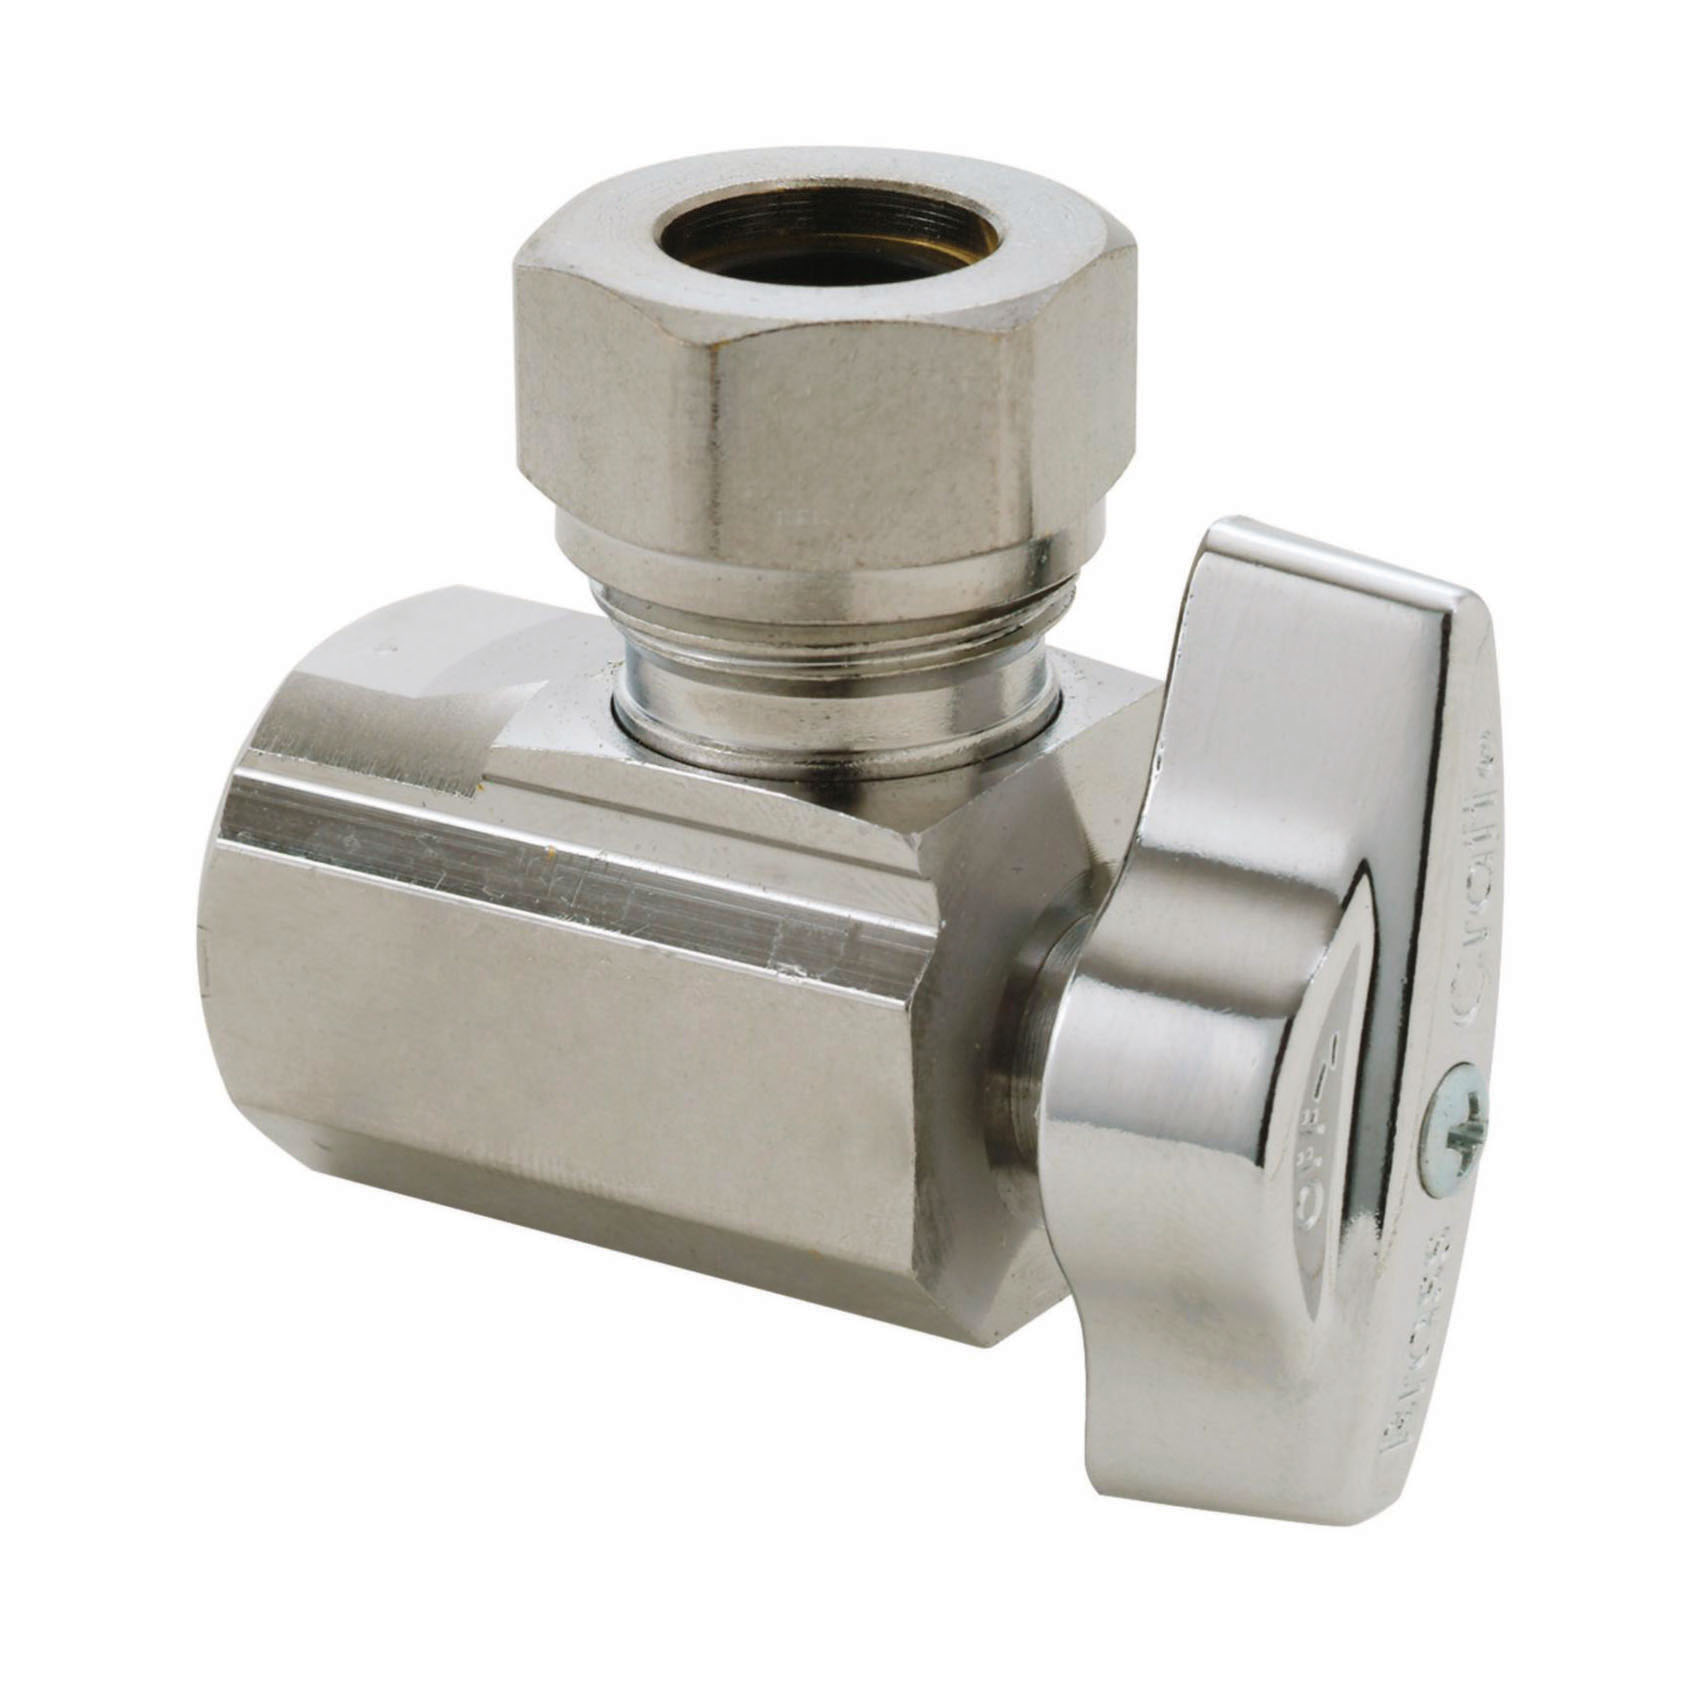 BrassCraft® KT3301X C KT™ 1/4 Turn Angle Ball Stop, 1/2 x 7/16 or 1/2 in Nominal, FNPT x Slip Joint, 125 psi, Brass Body, Polished Chrome, Domestic